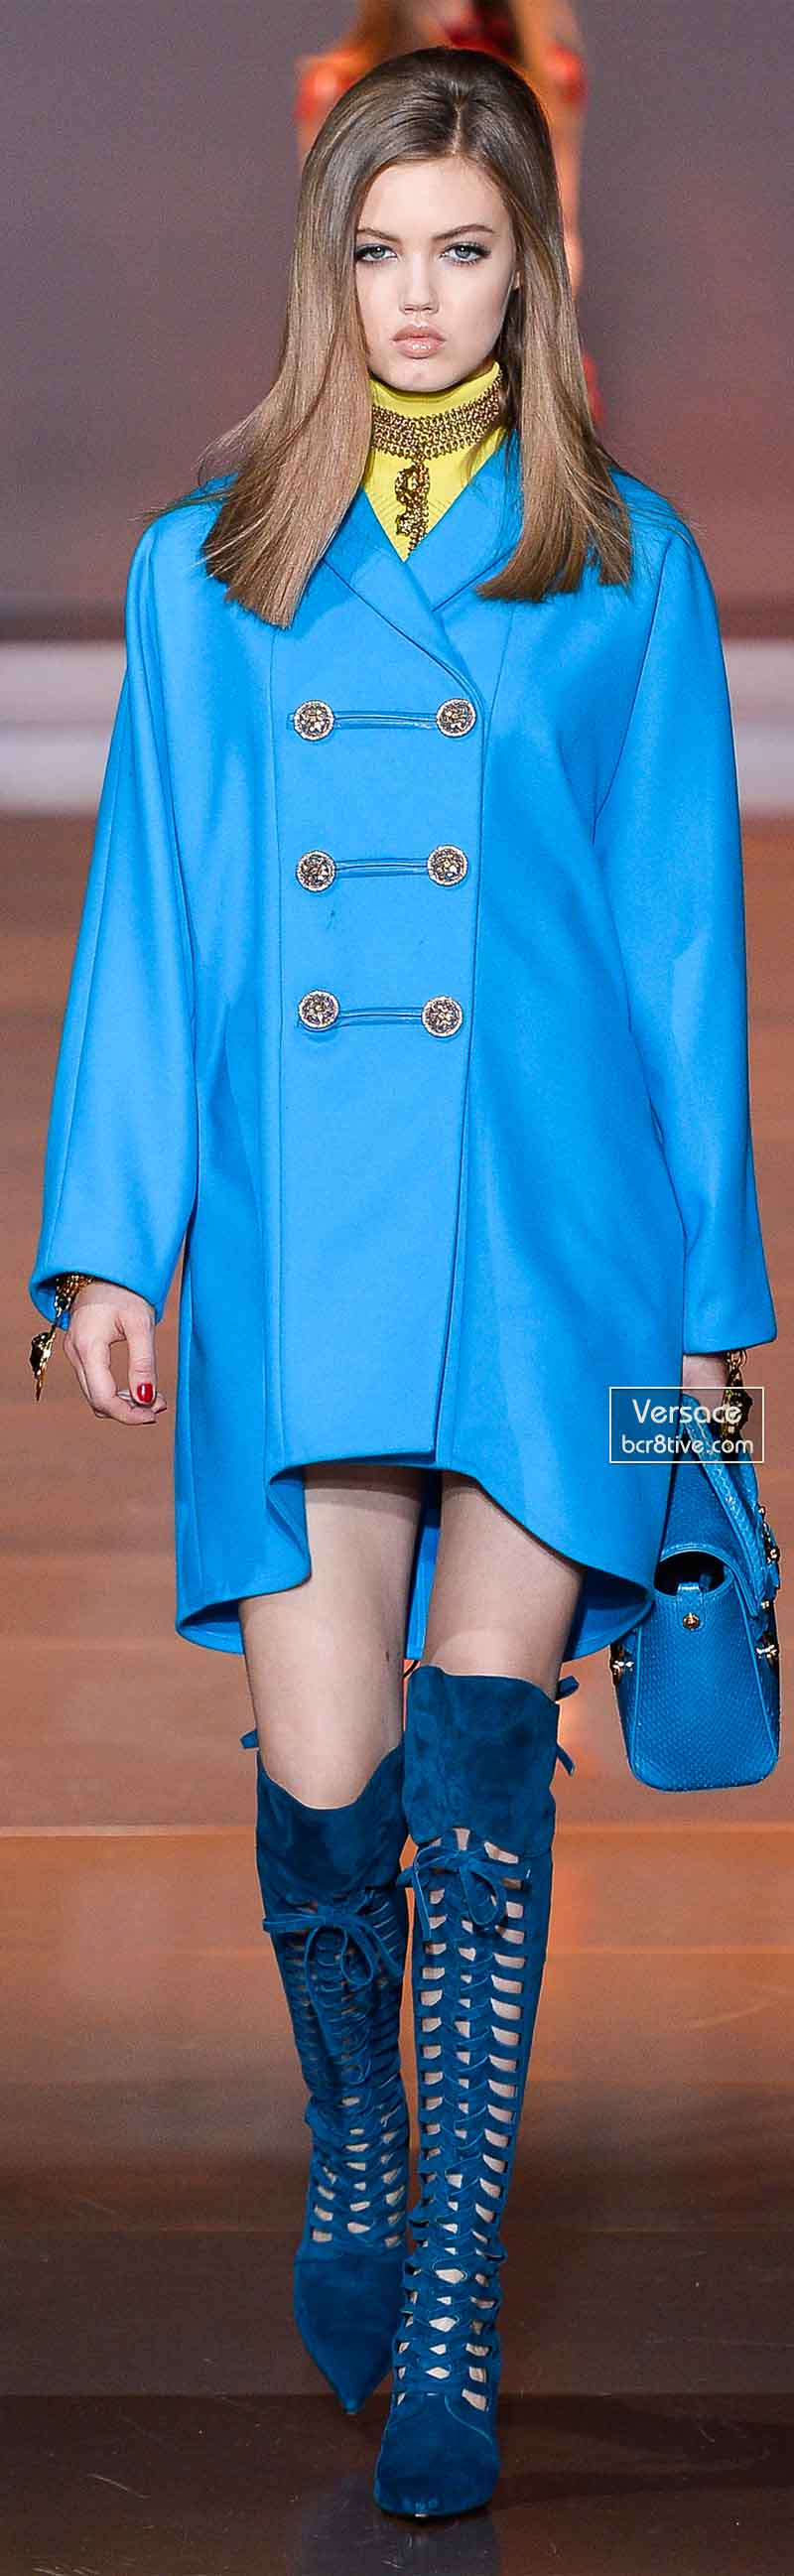 Versace Fall 2014 - Lindsey Wixson